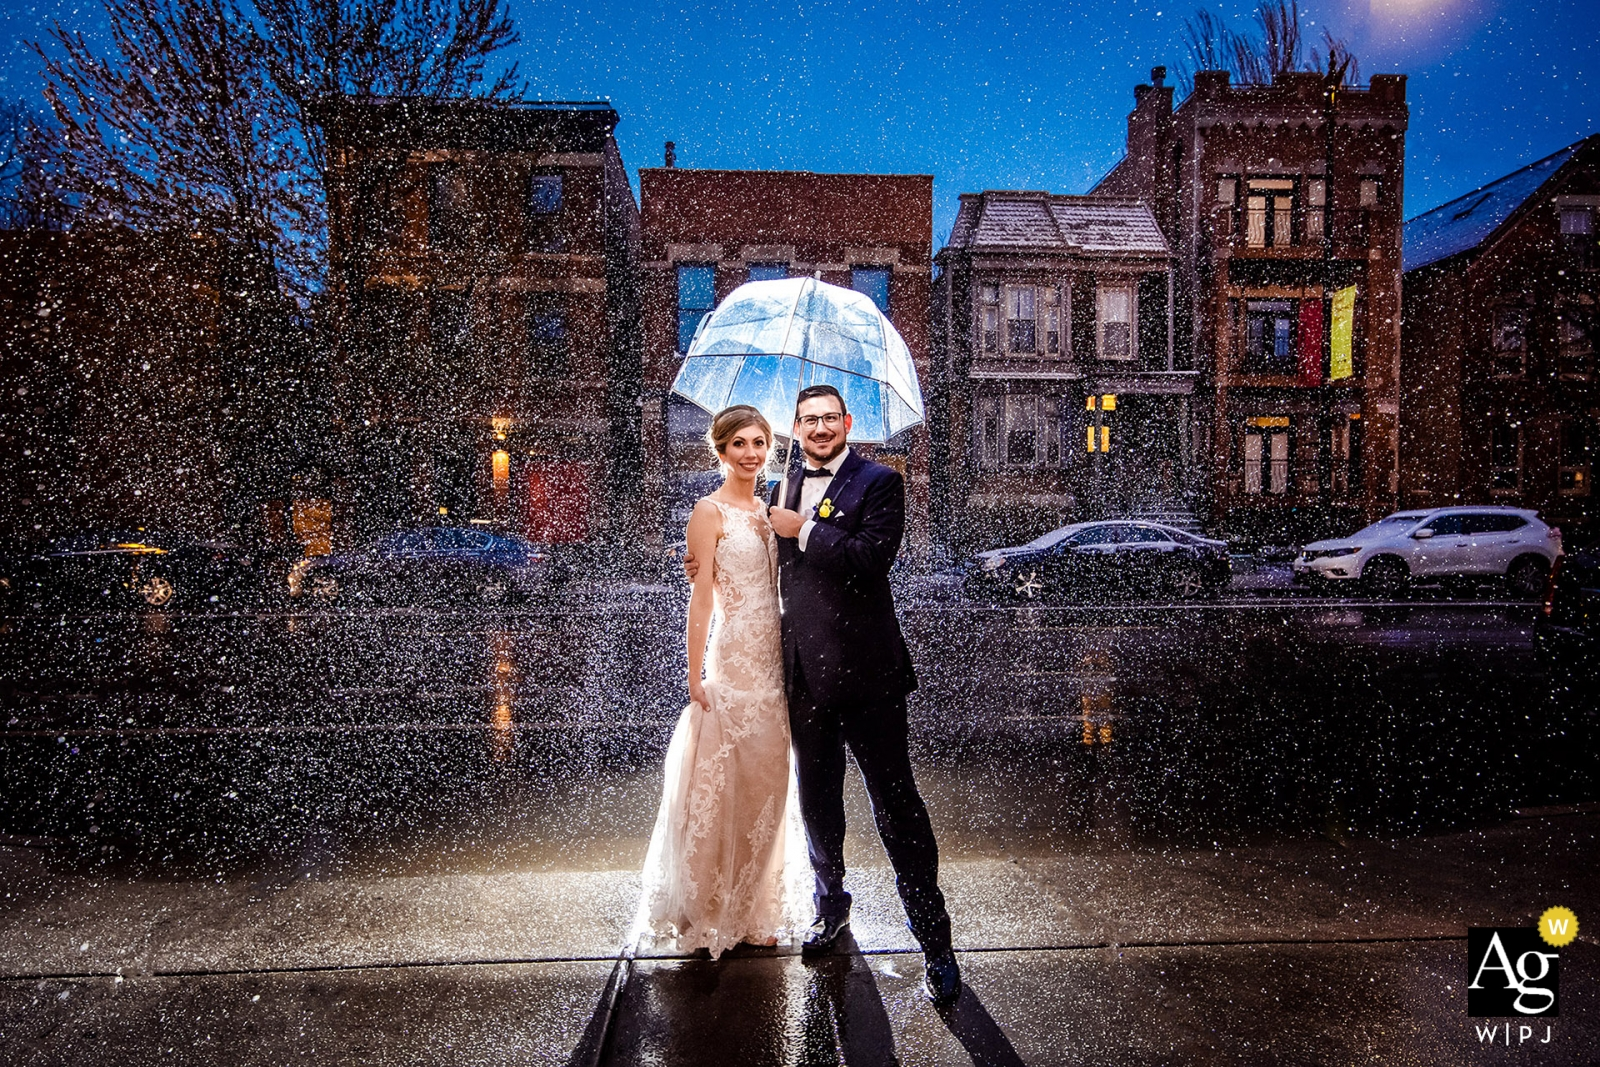 floating gallery chicago bride and groom portraits in the rain under an umbrella | Illinois wedding photographer